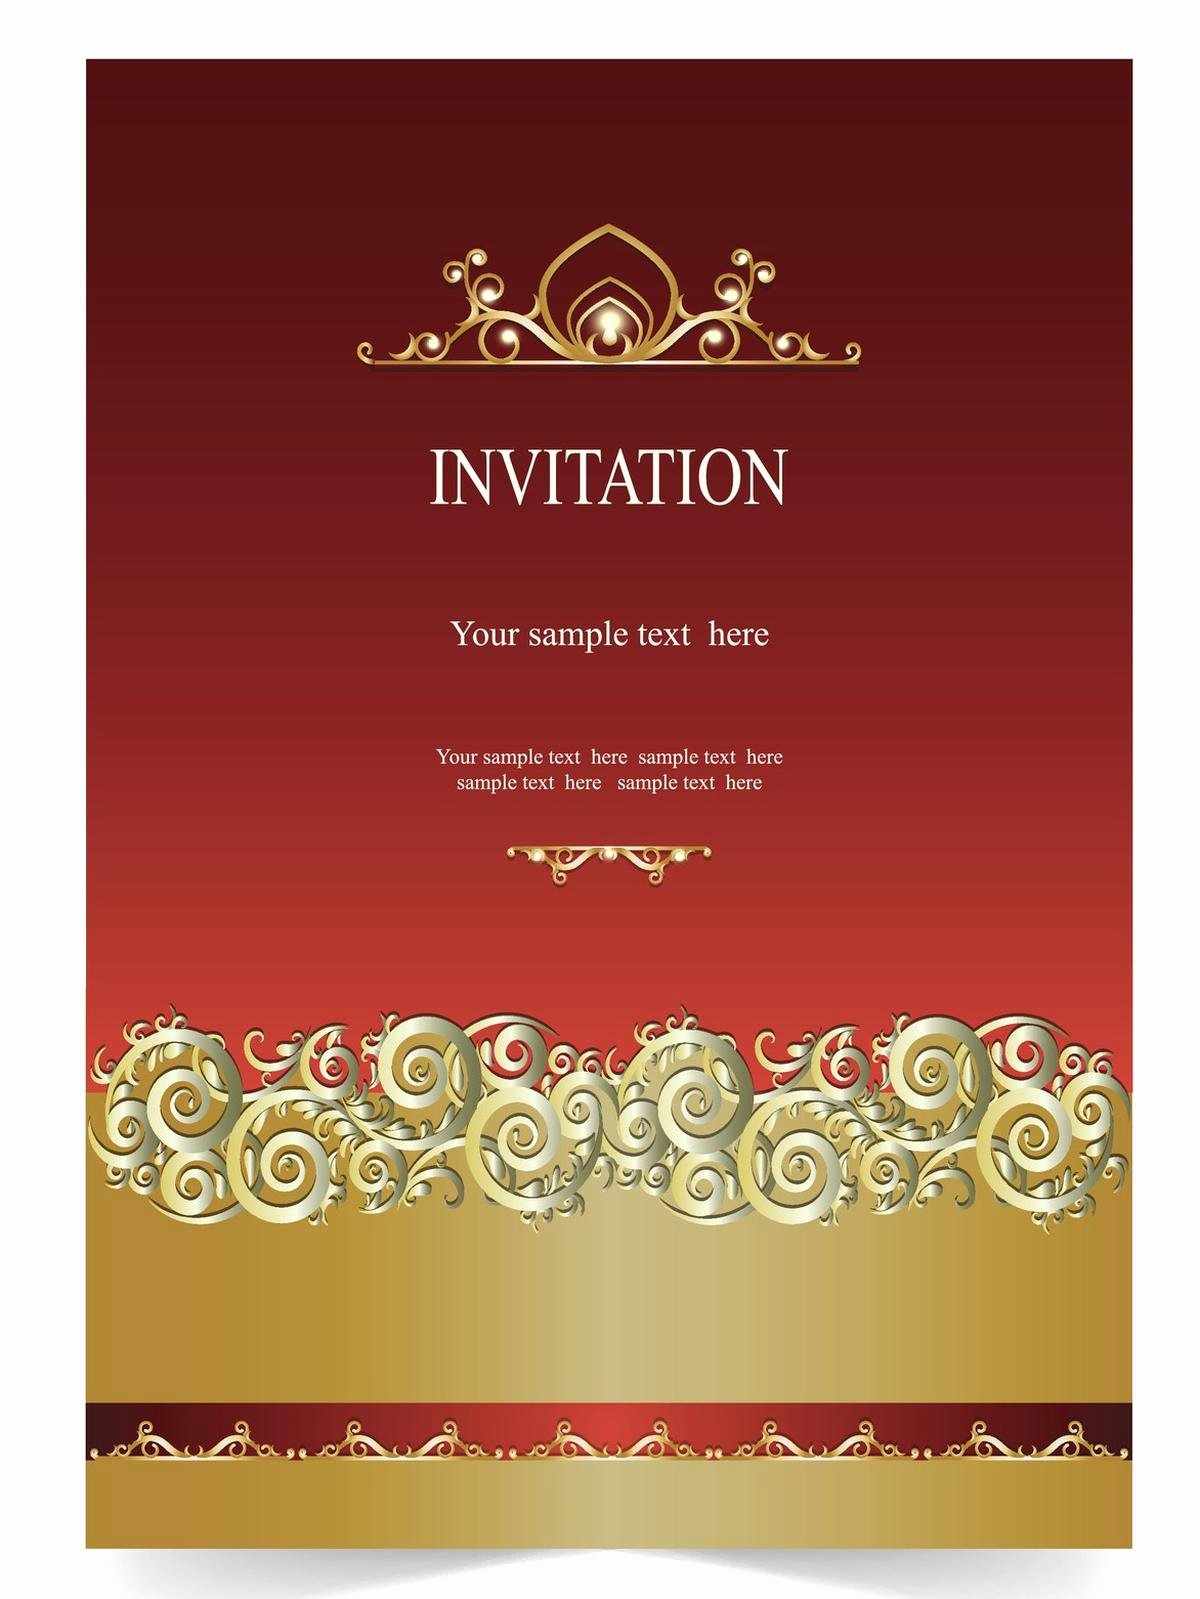 Farewell Invitation Template Free Inspirational Invitation Templates that are Perfect for Your Farewell Party